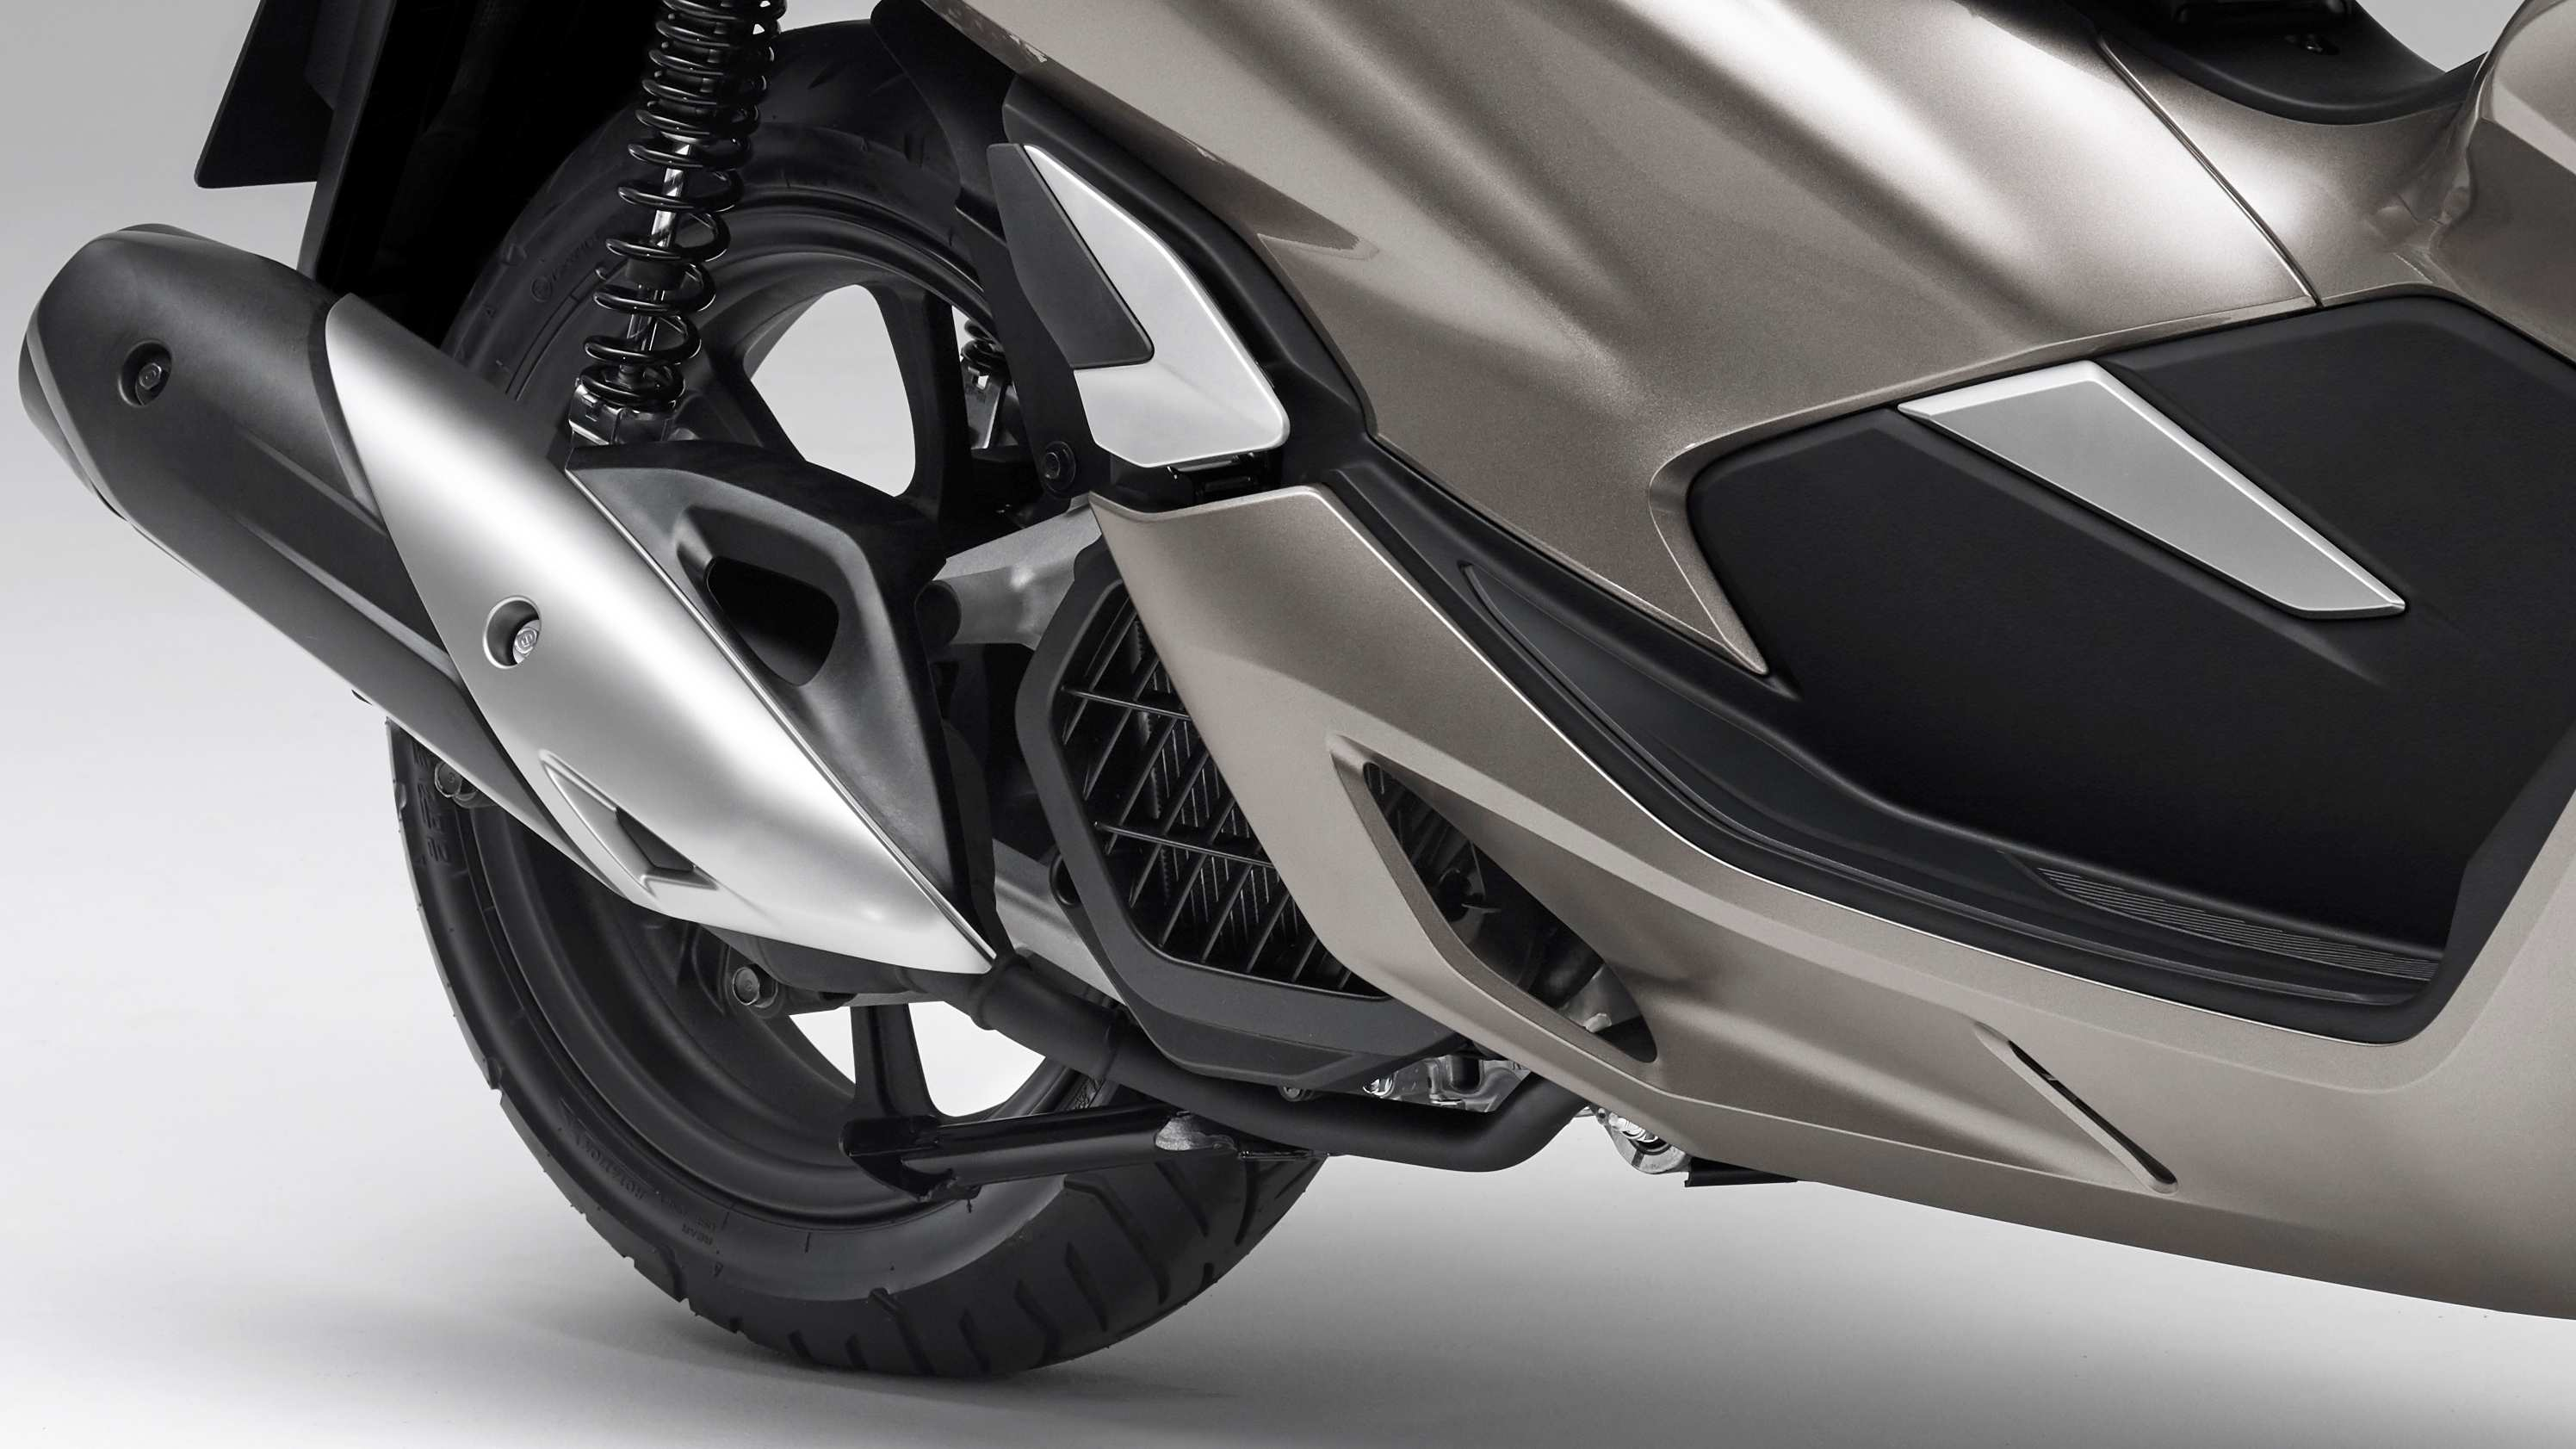 38 New New 2019 Honda Pcx150 Redesign Overview by New 2019 Honda Pcx150 Redesign